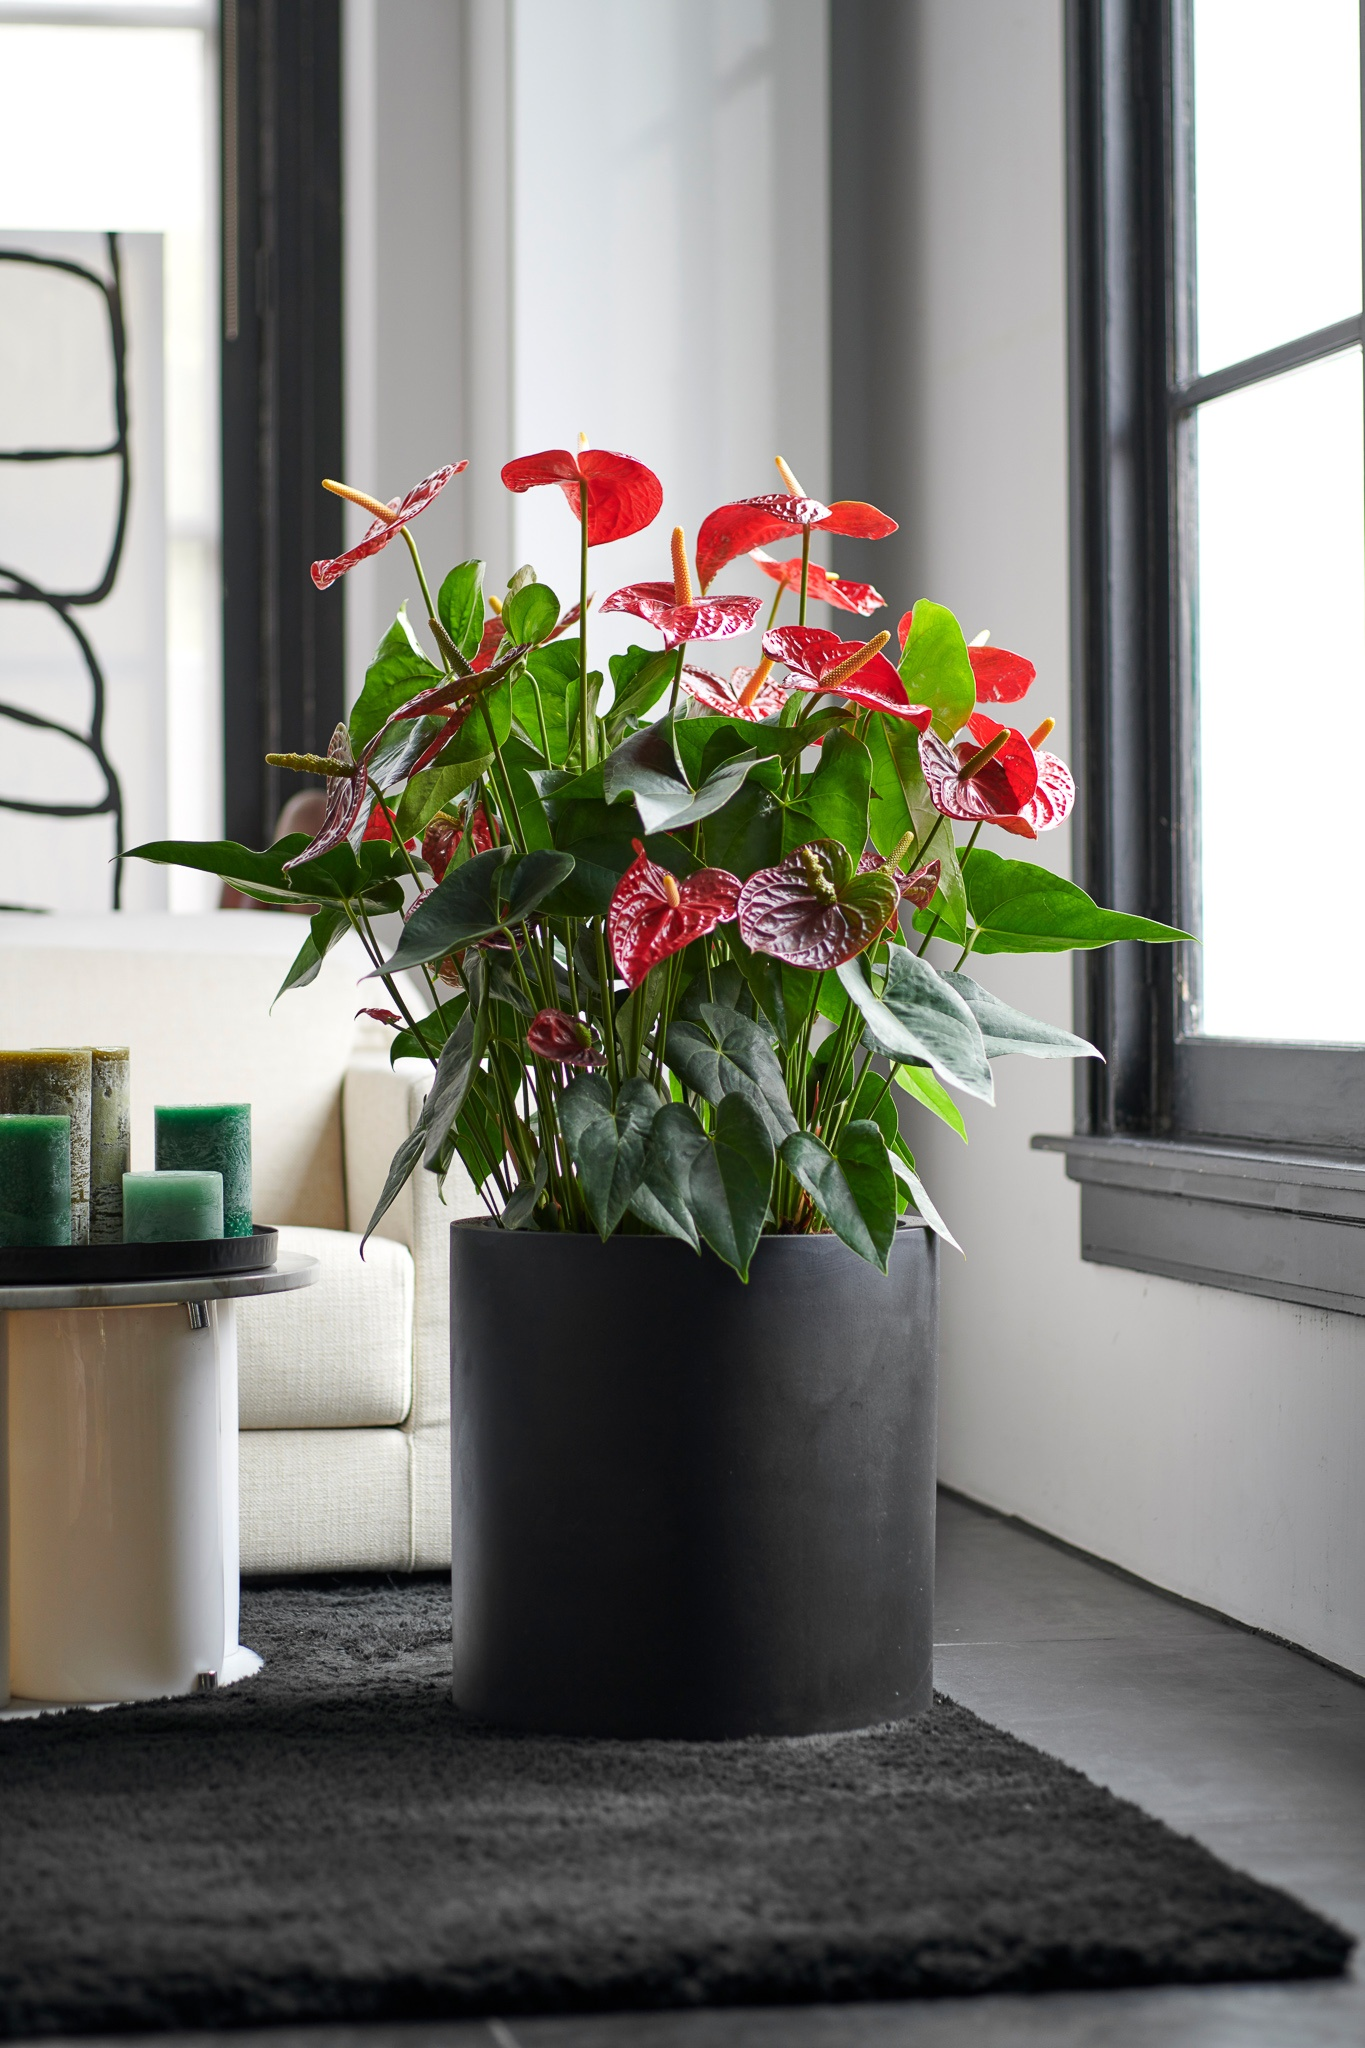 Good-bye Christmas tree, hello Anthurium pot plant!